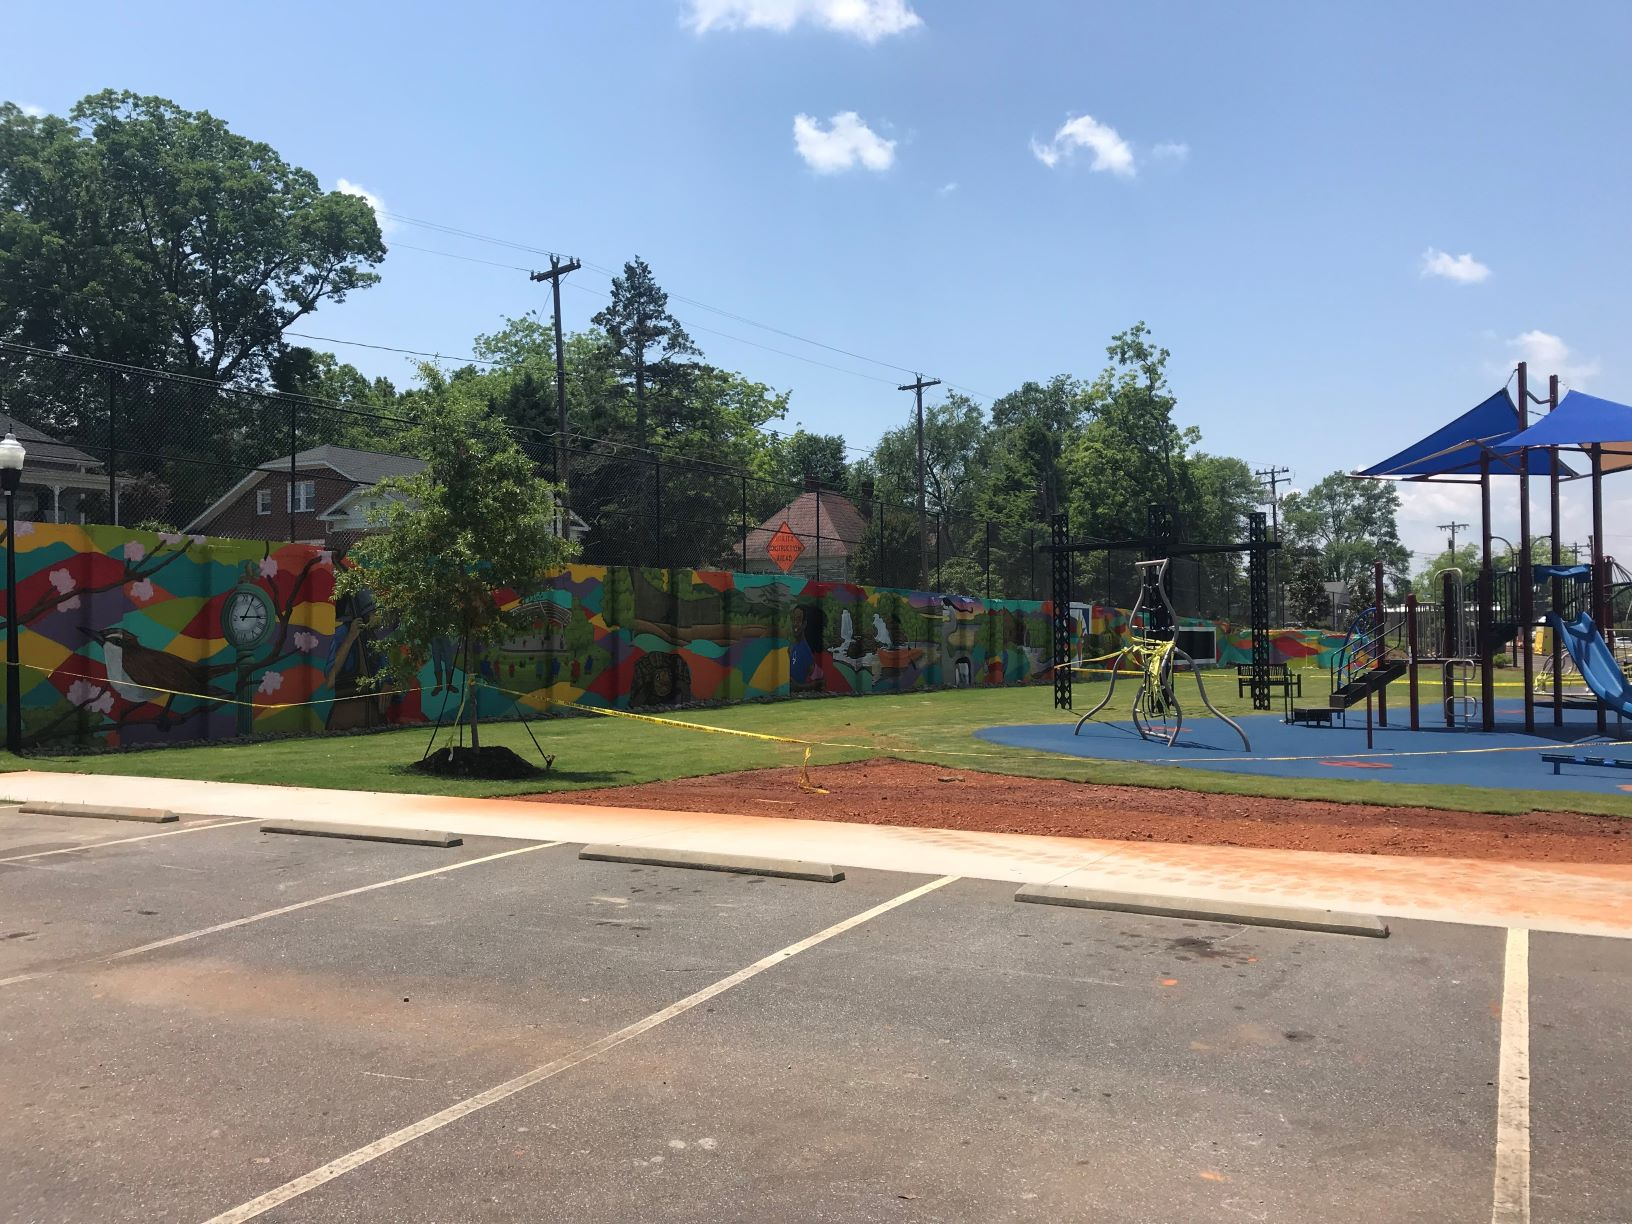 City of Pickens Doodle Park